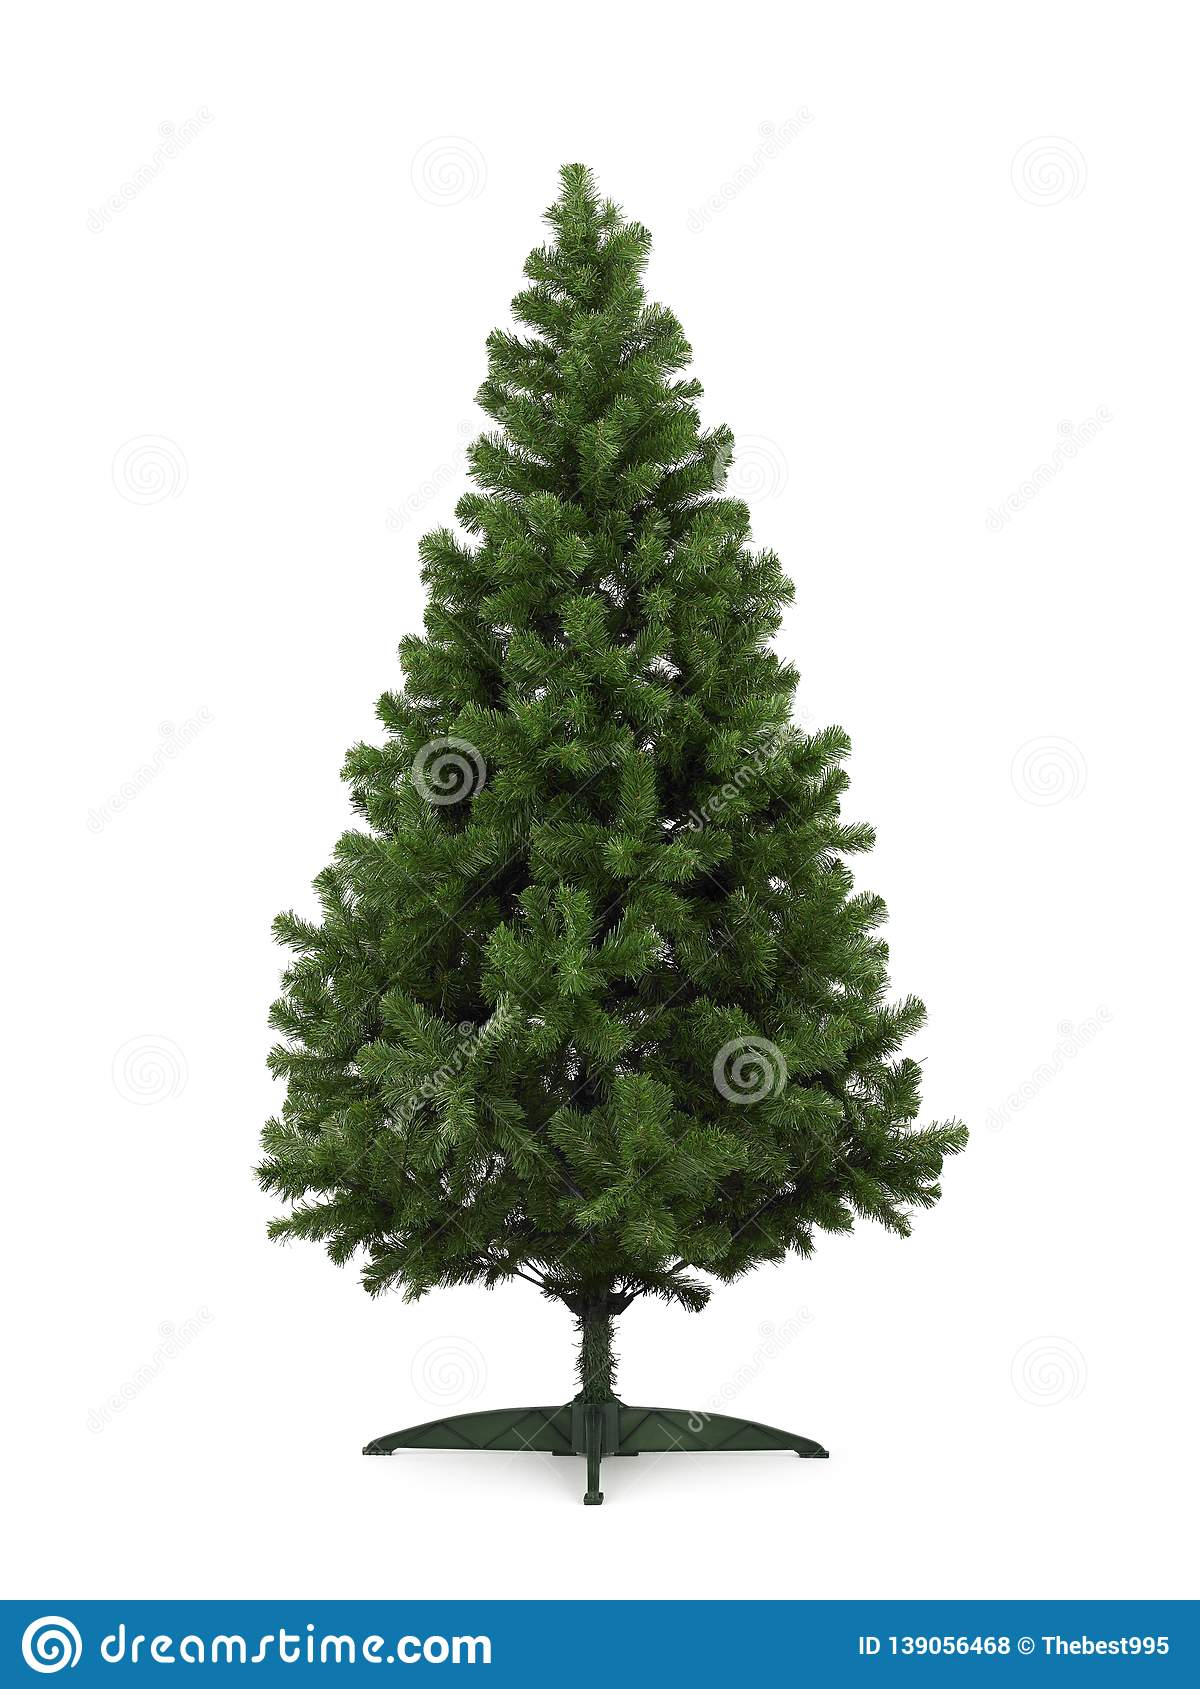 Real Christmas Tree, Isolated On White Background Stock ...